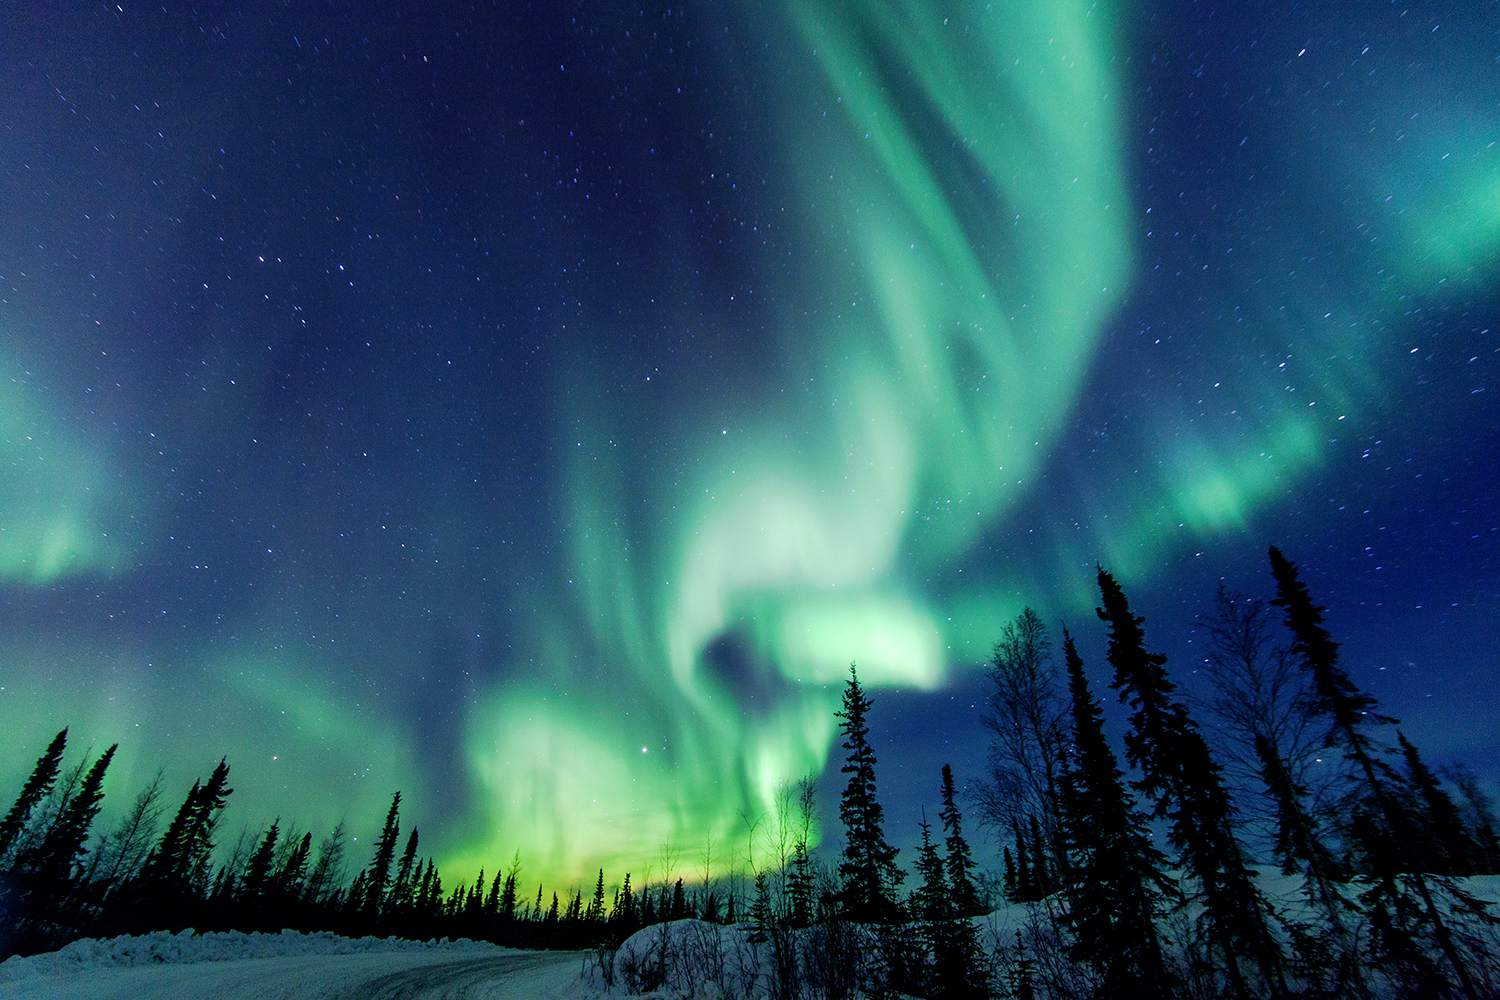 Northern Lights close to Yellowknife in the Northwest Territories